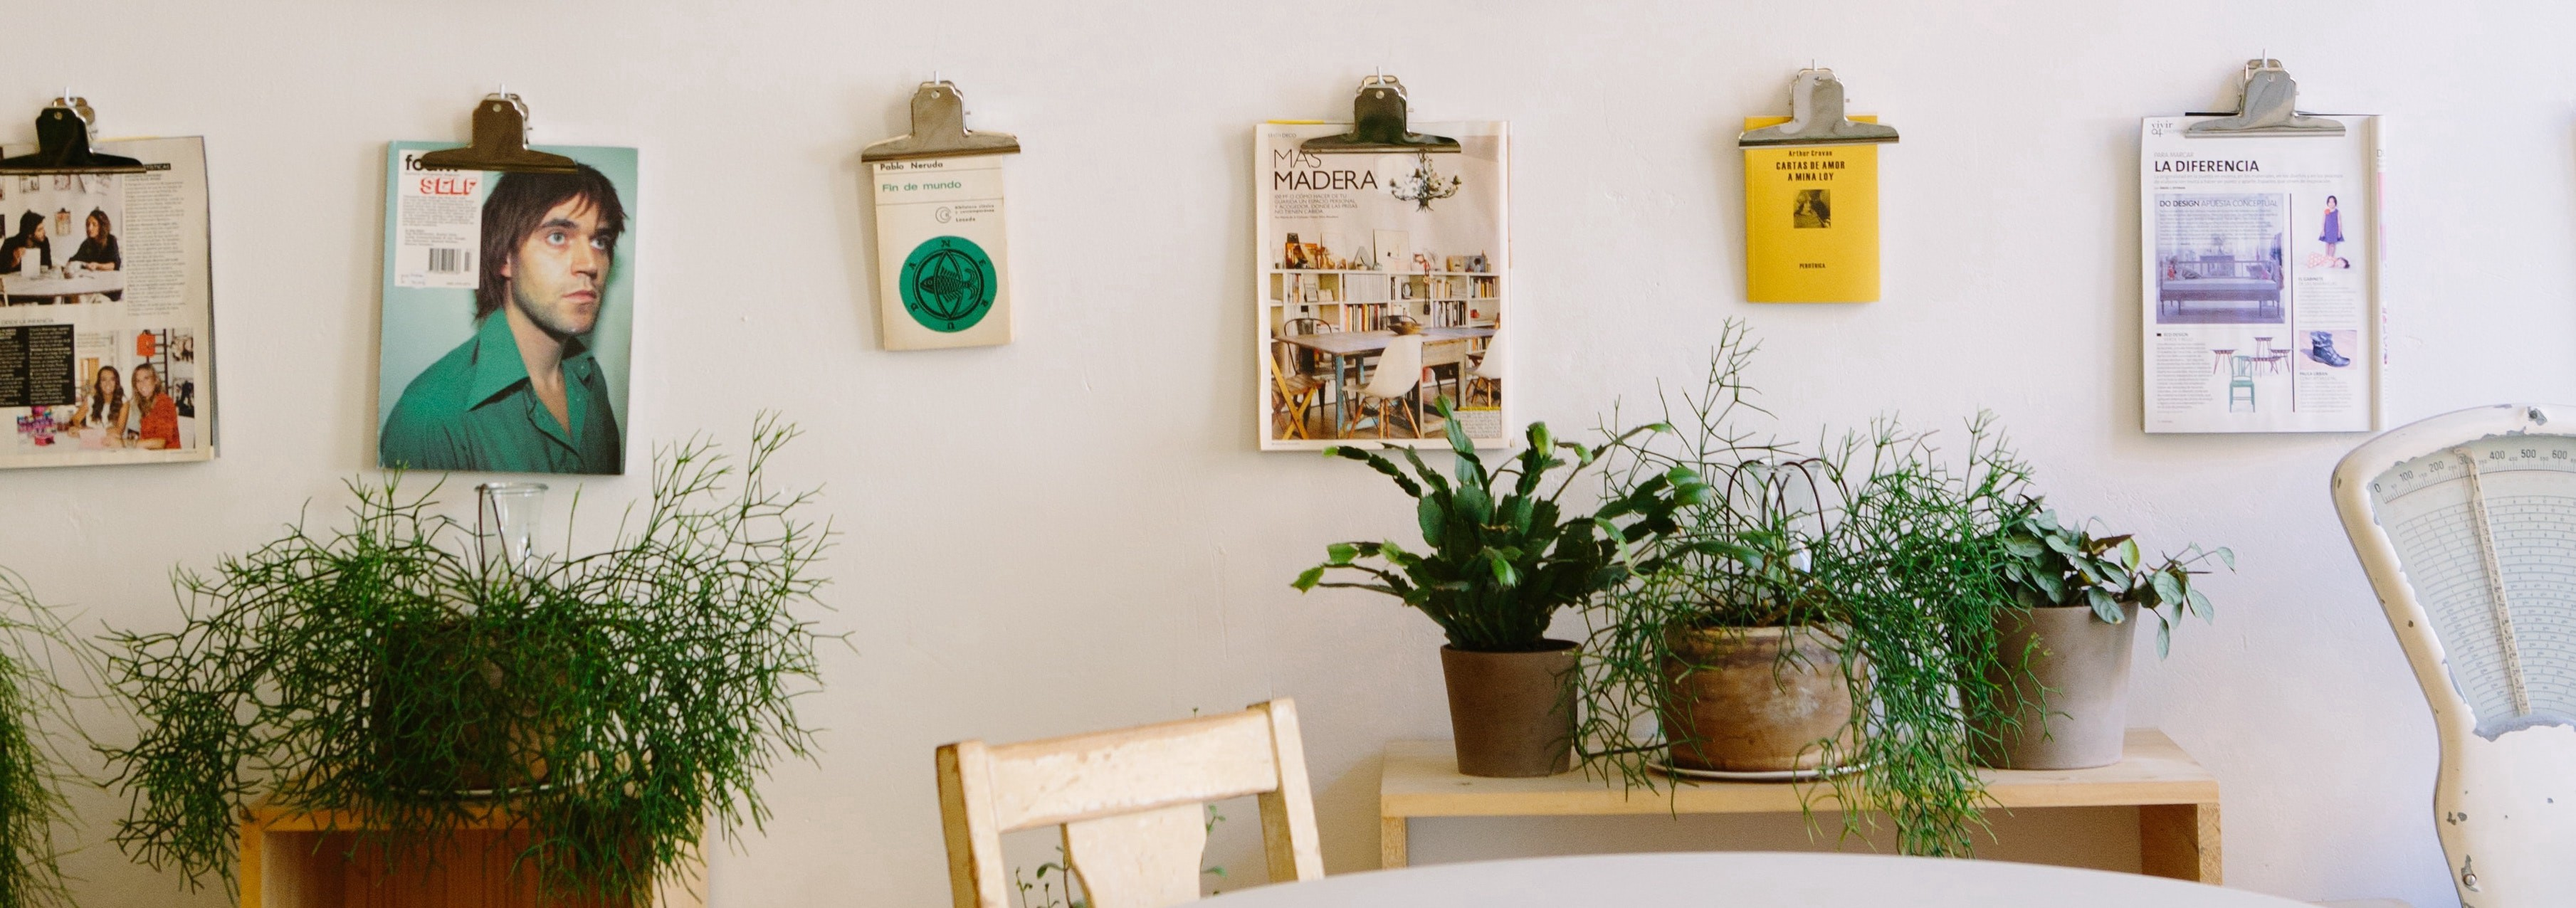 Wall with magazine prints and plants